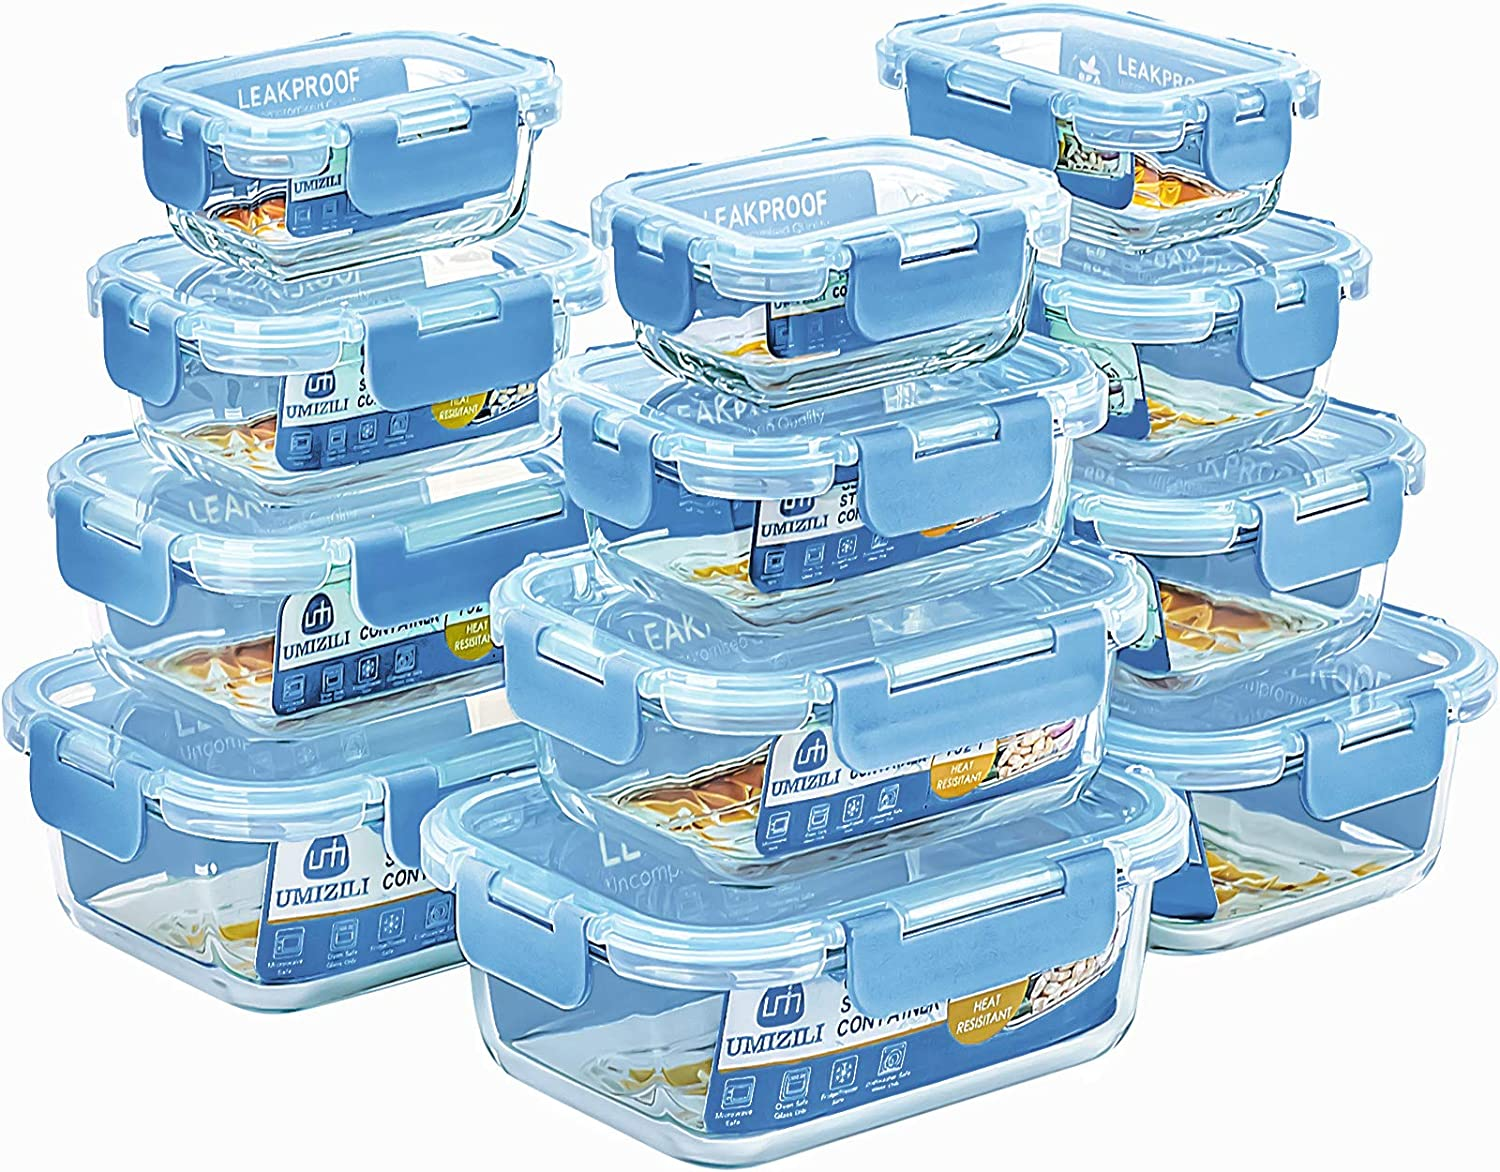 24-Piece Glass Food Storage Containers - Haze Blue Snap Locking Lids Leak Proof, 4 Size Glass Airtight Meal Prep Containers Set, Glass Lunch Boxes for Kitchen, Dishwasher & Microwave Safe